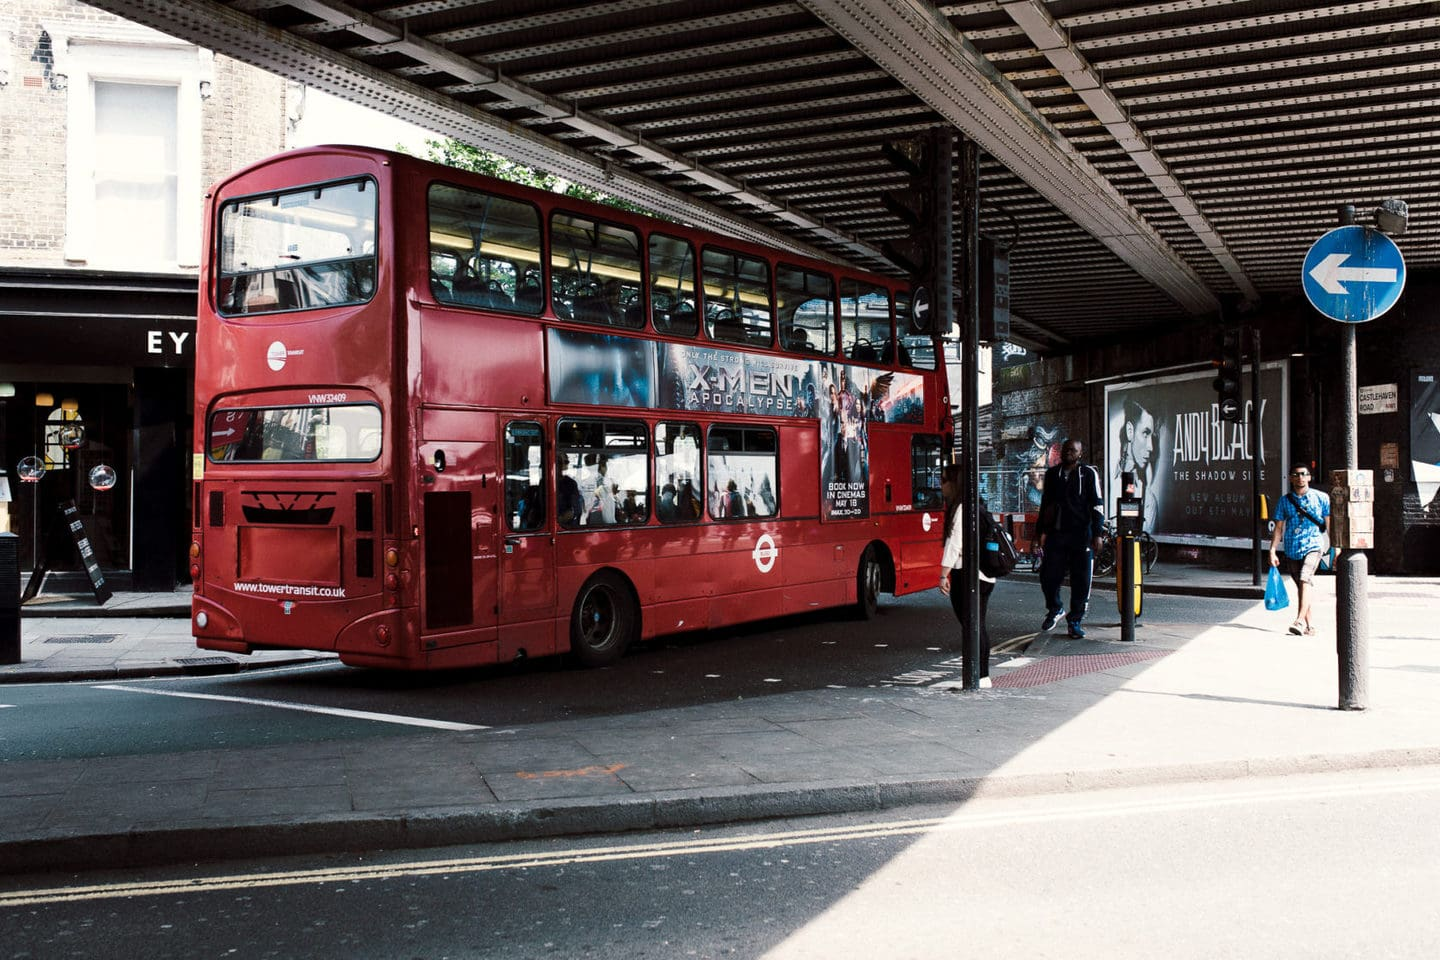 Sight seeing Bus in Camden Town